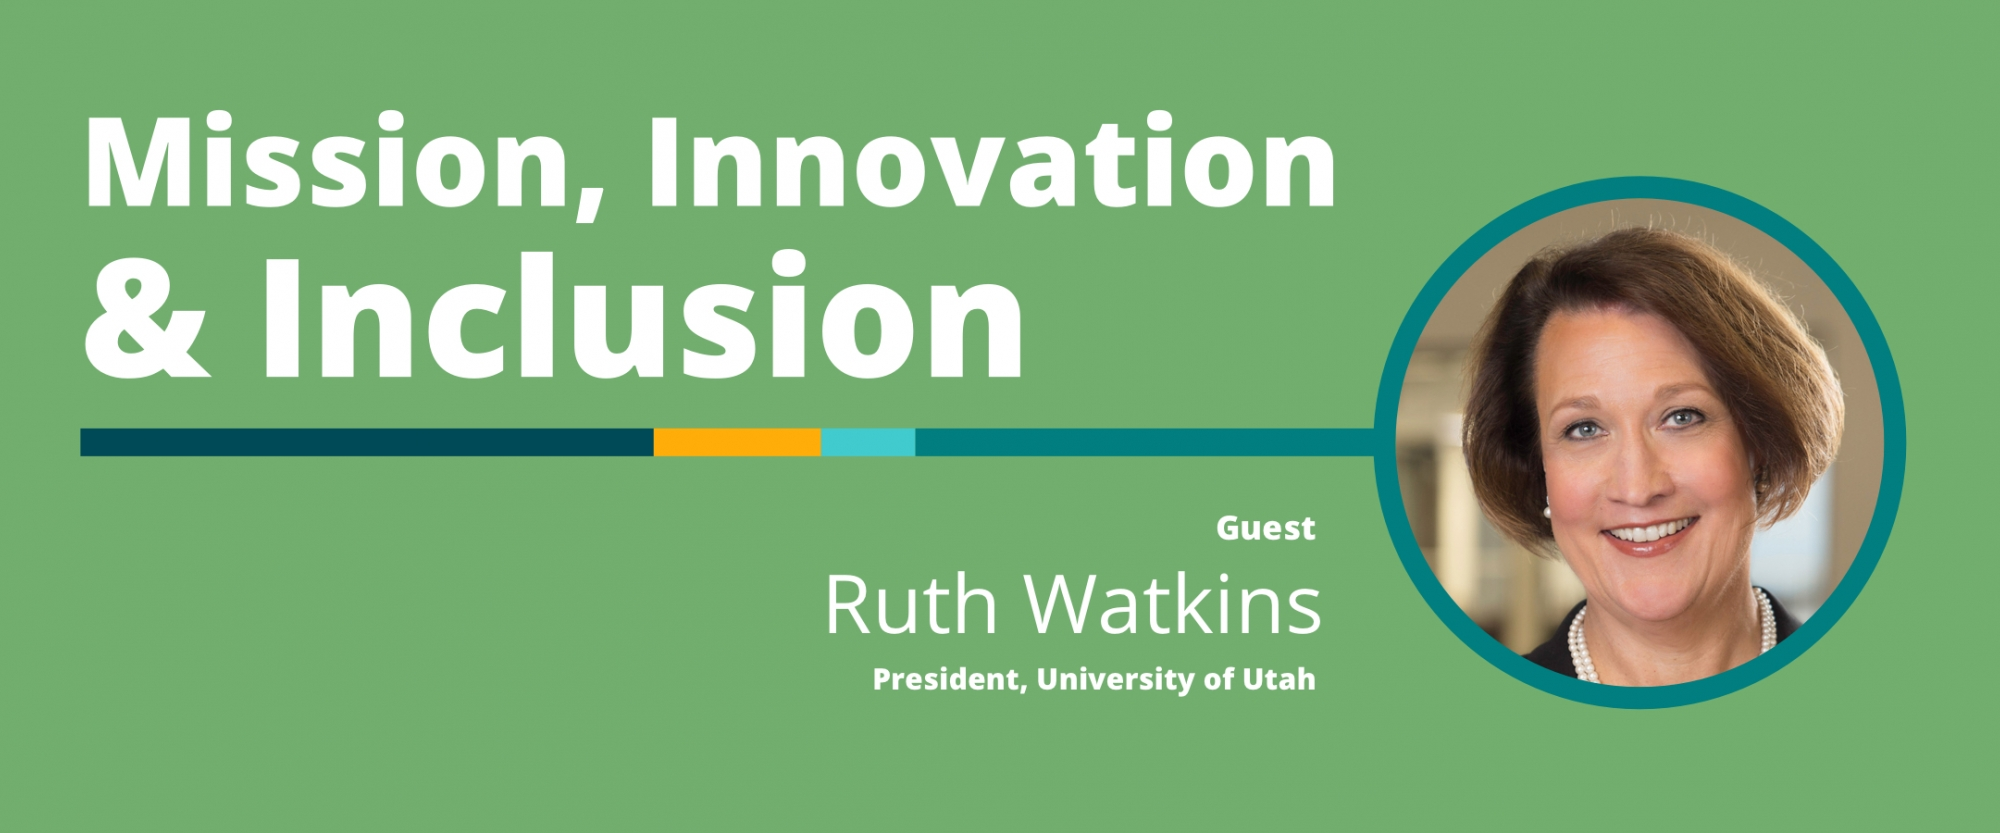 Mission, Innovation, and Inclusion: A Conversation With Ruth Watkins, University of Utah President